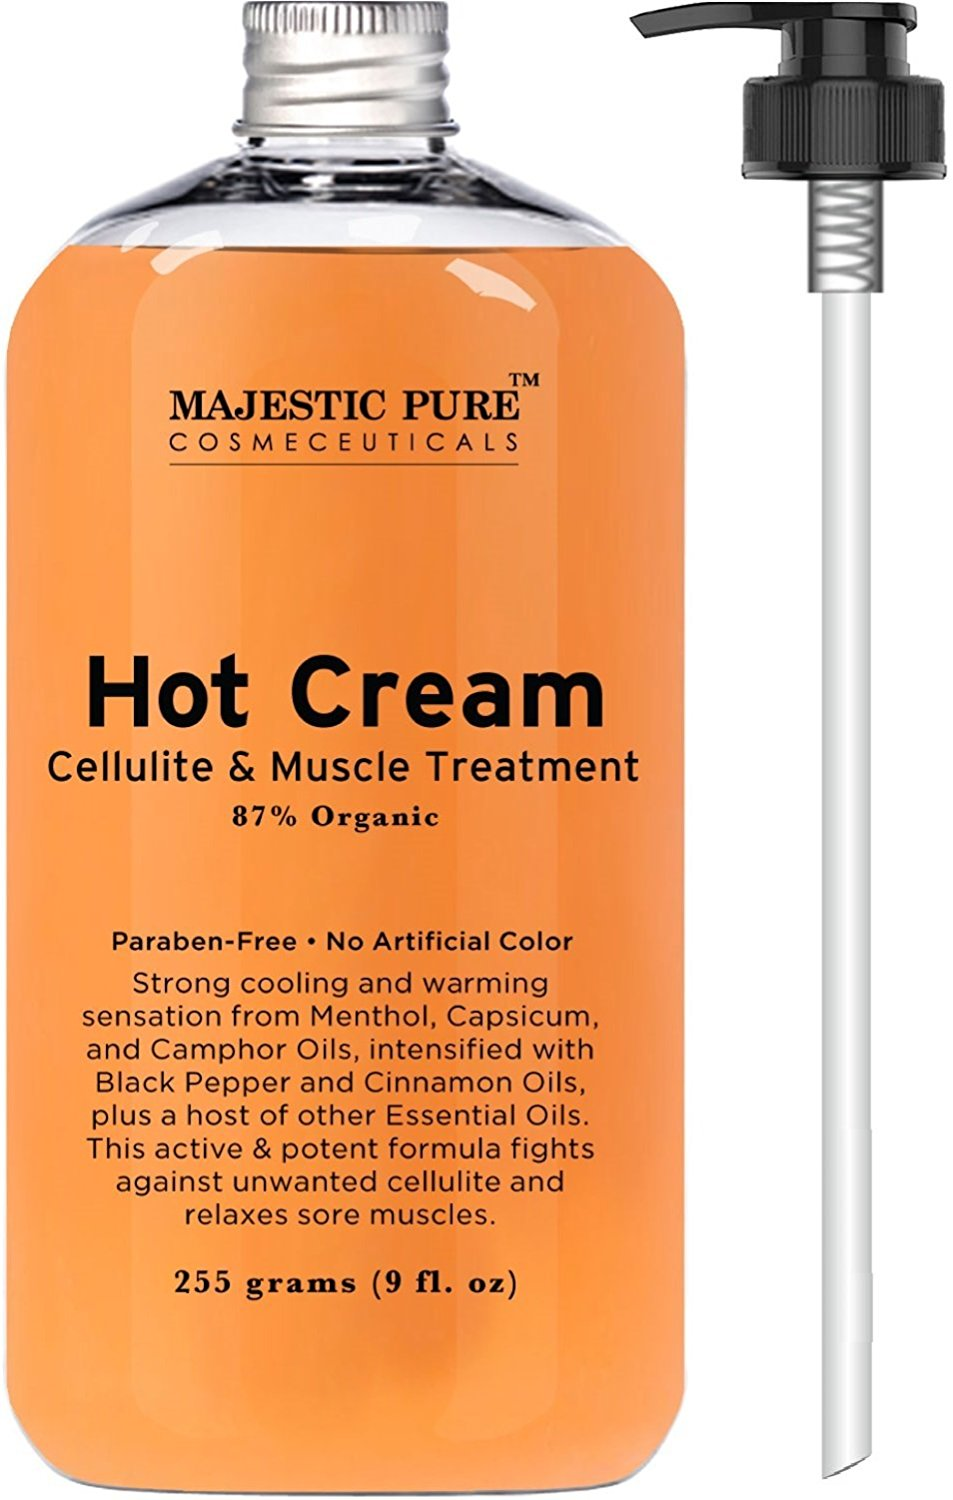 Majestic Pure Anti-Cellulite Cream